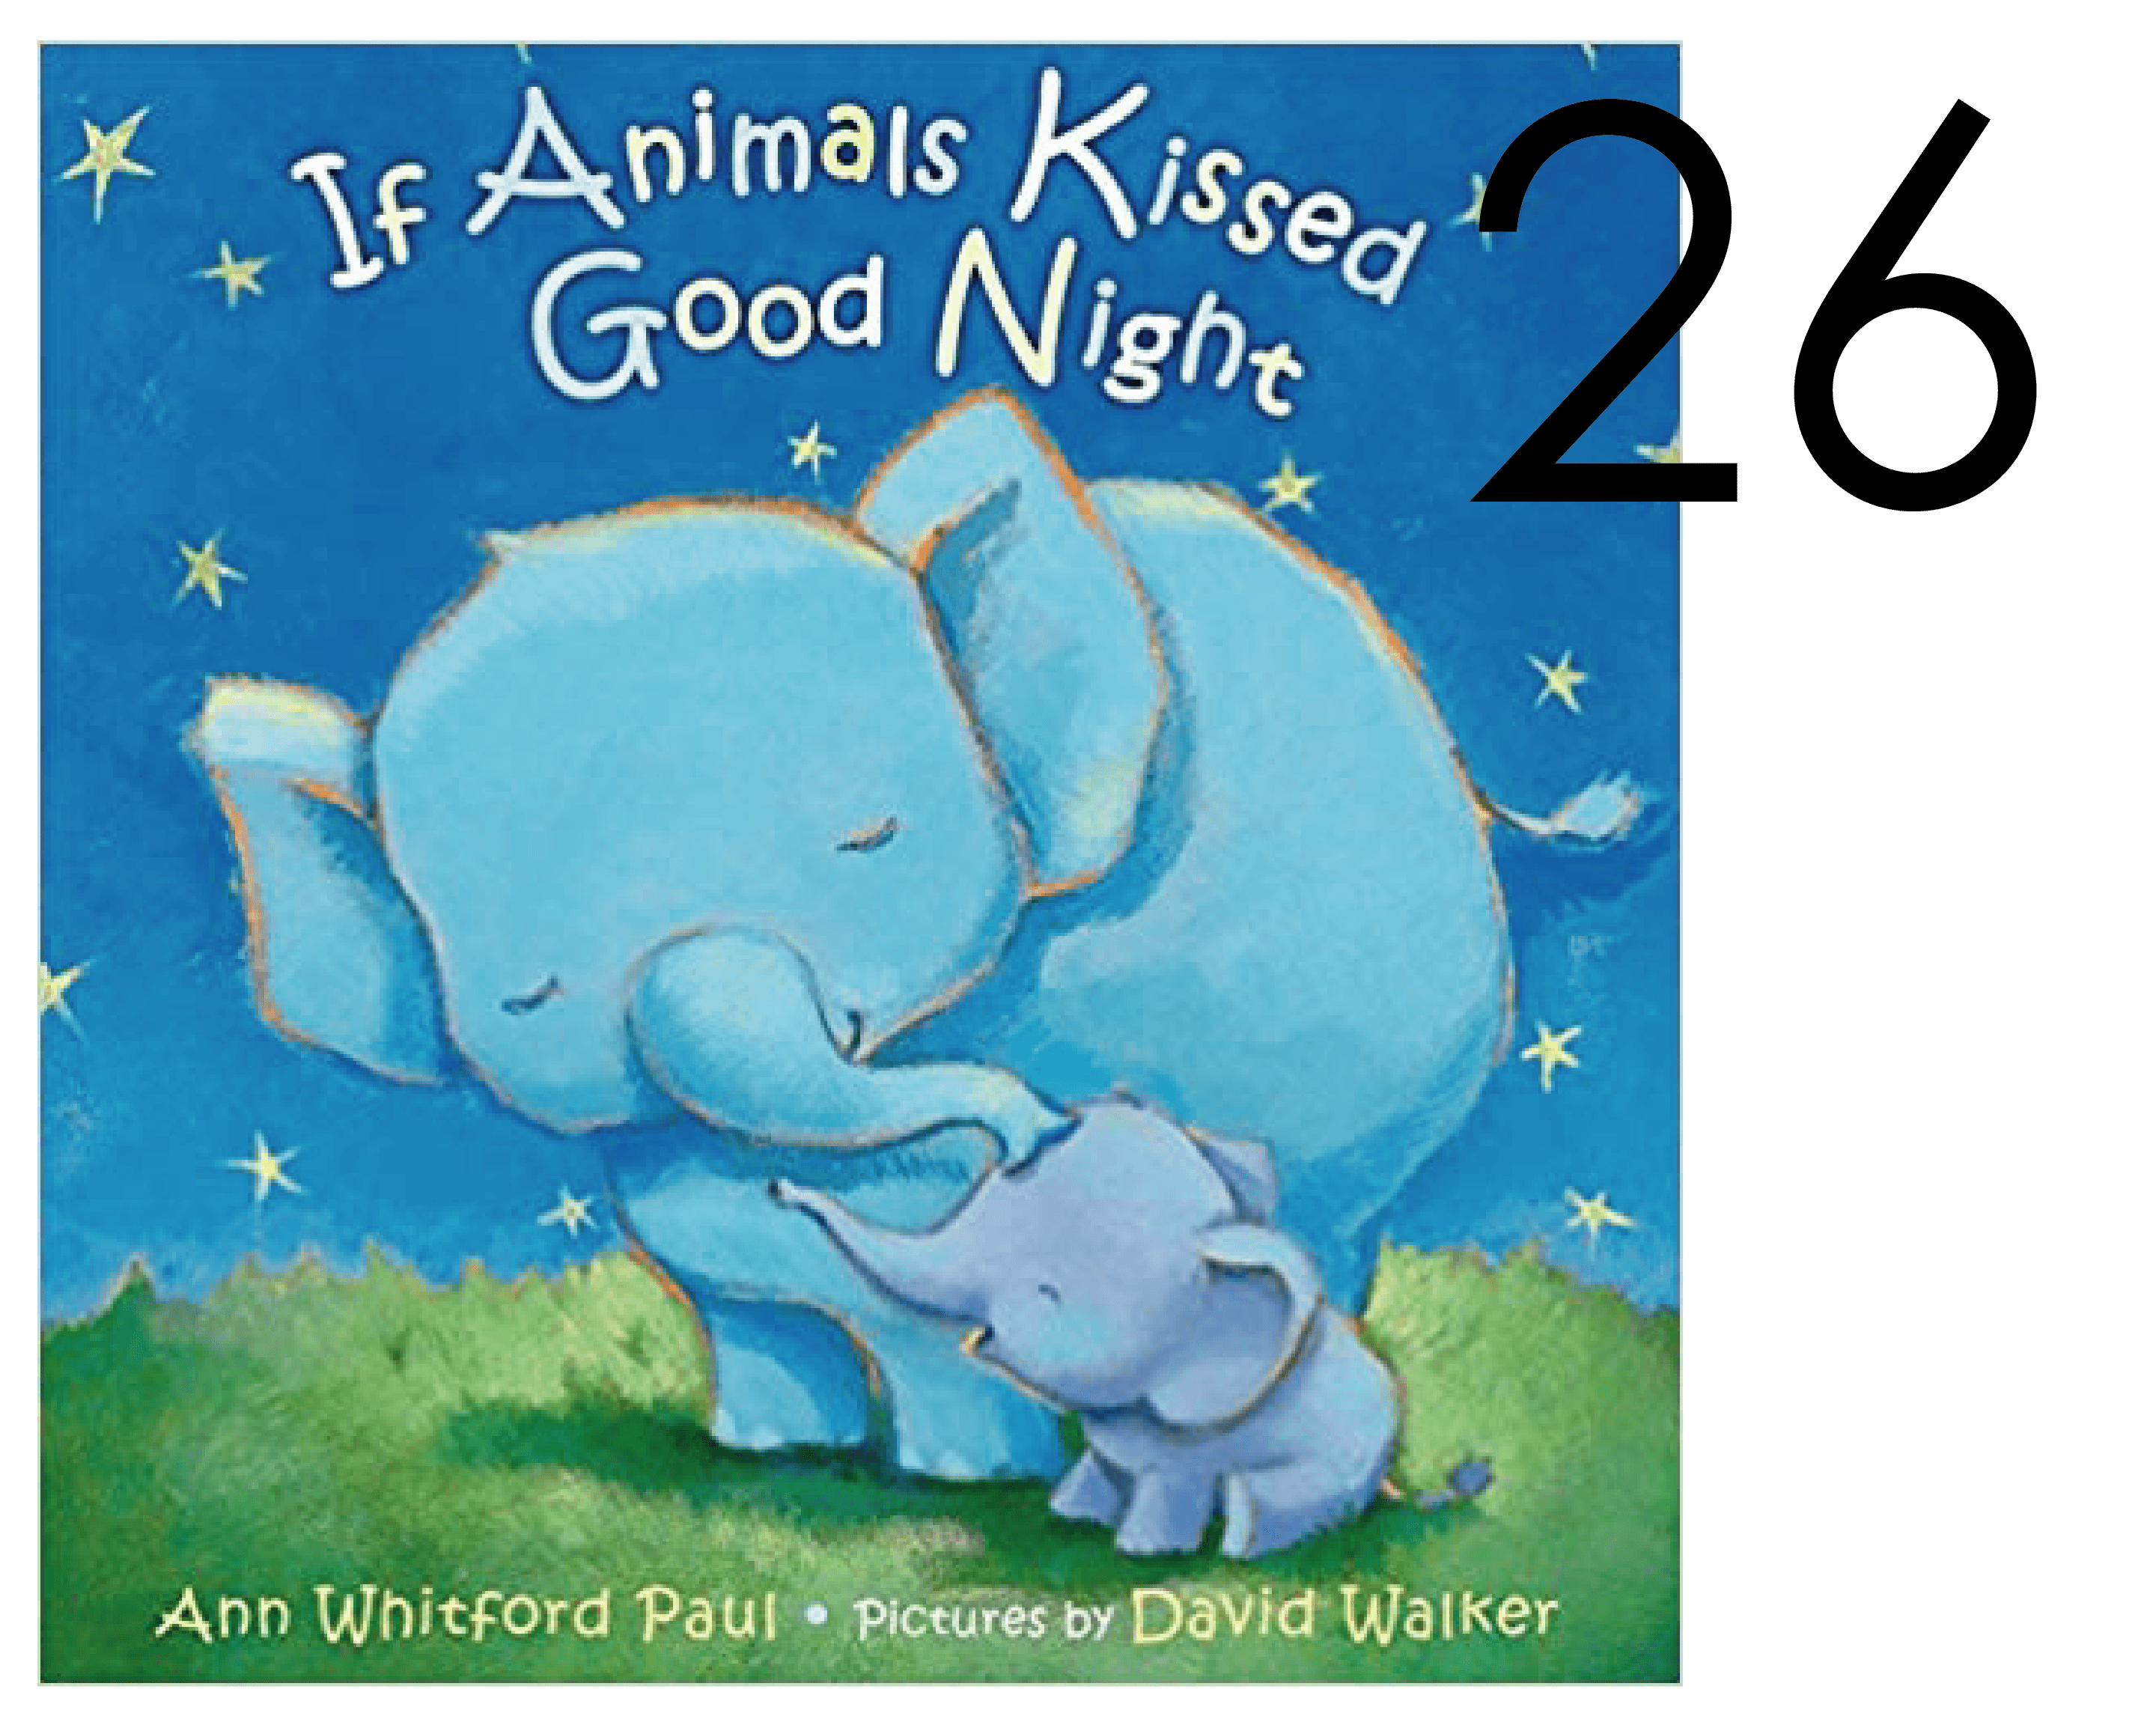 If Animals Kissed Good Night Holiday Book List